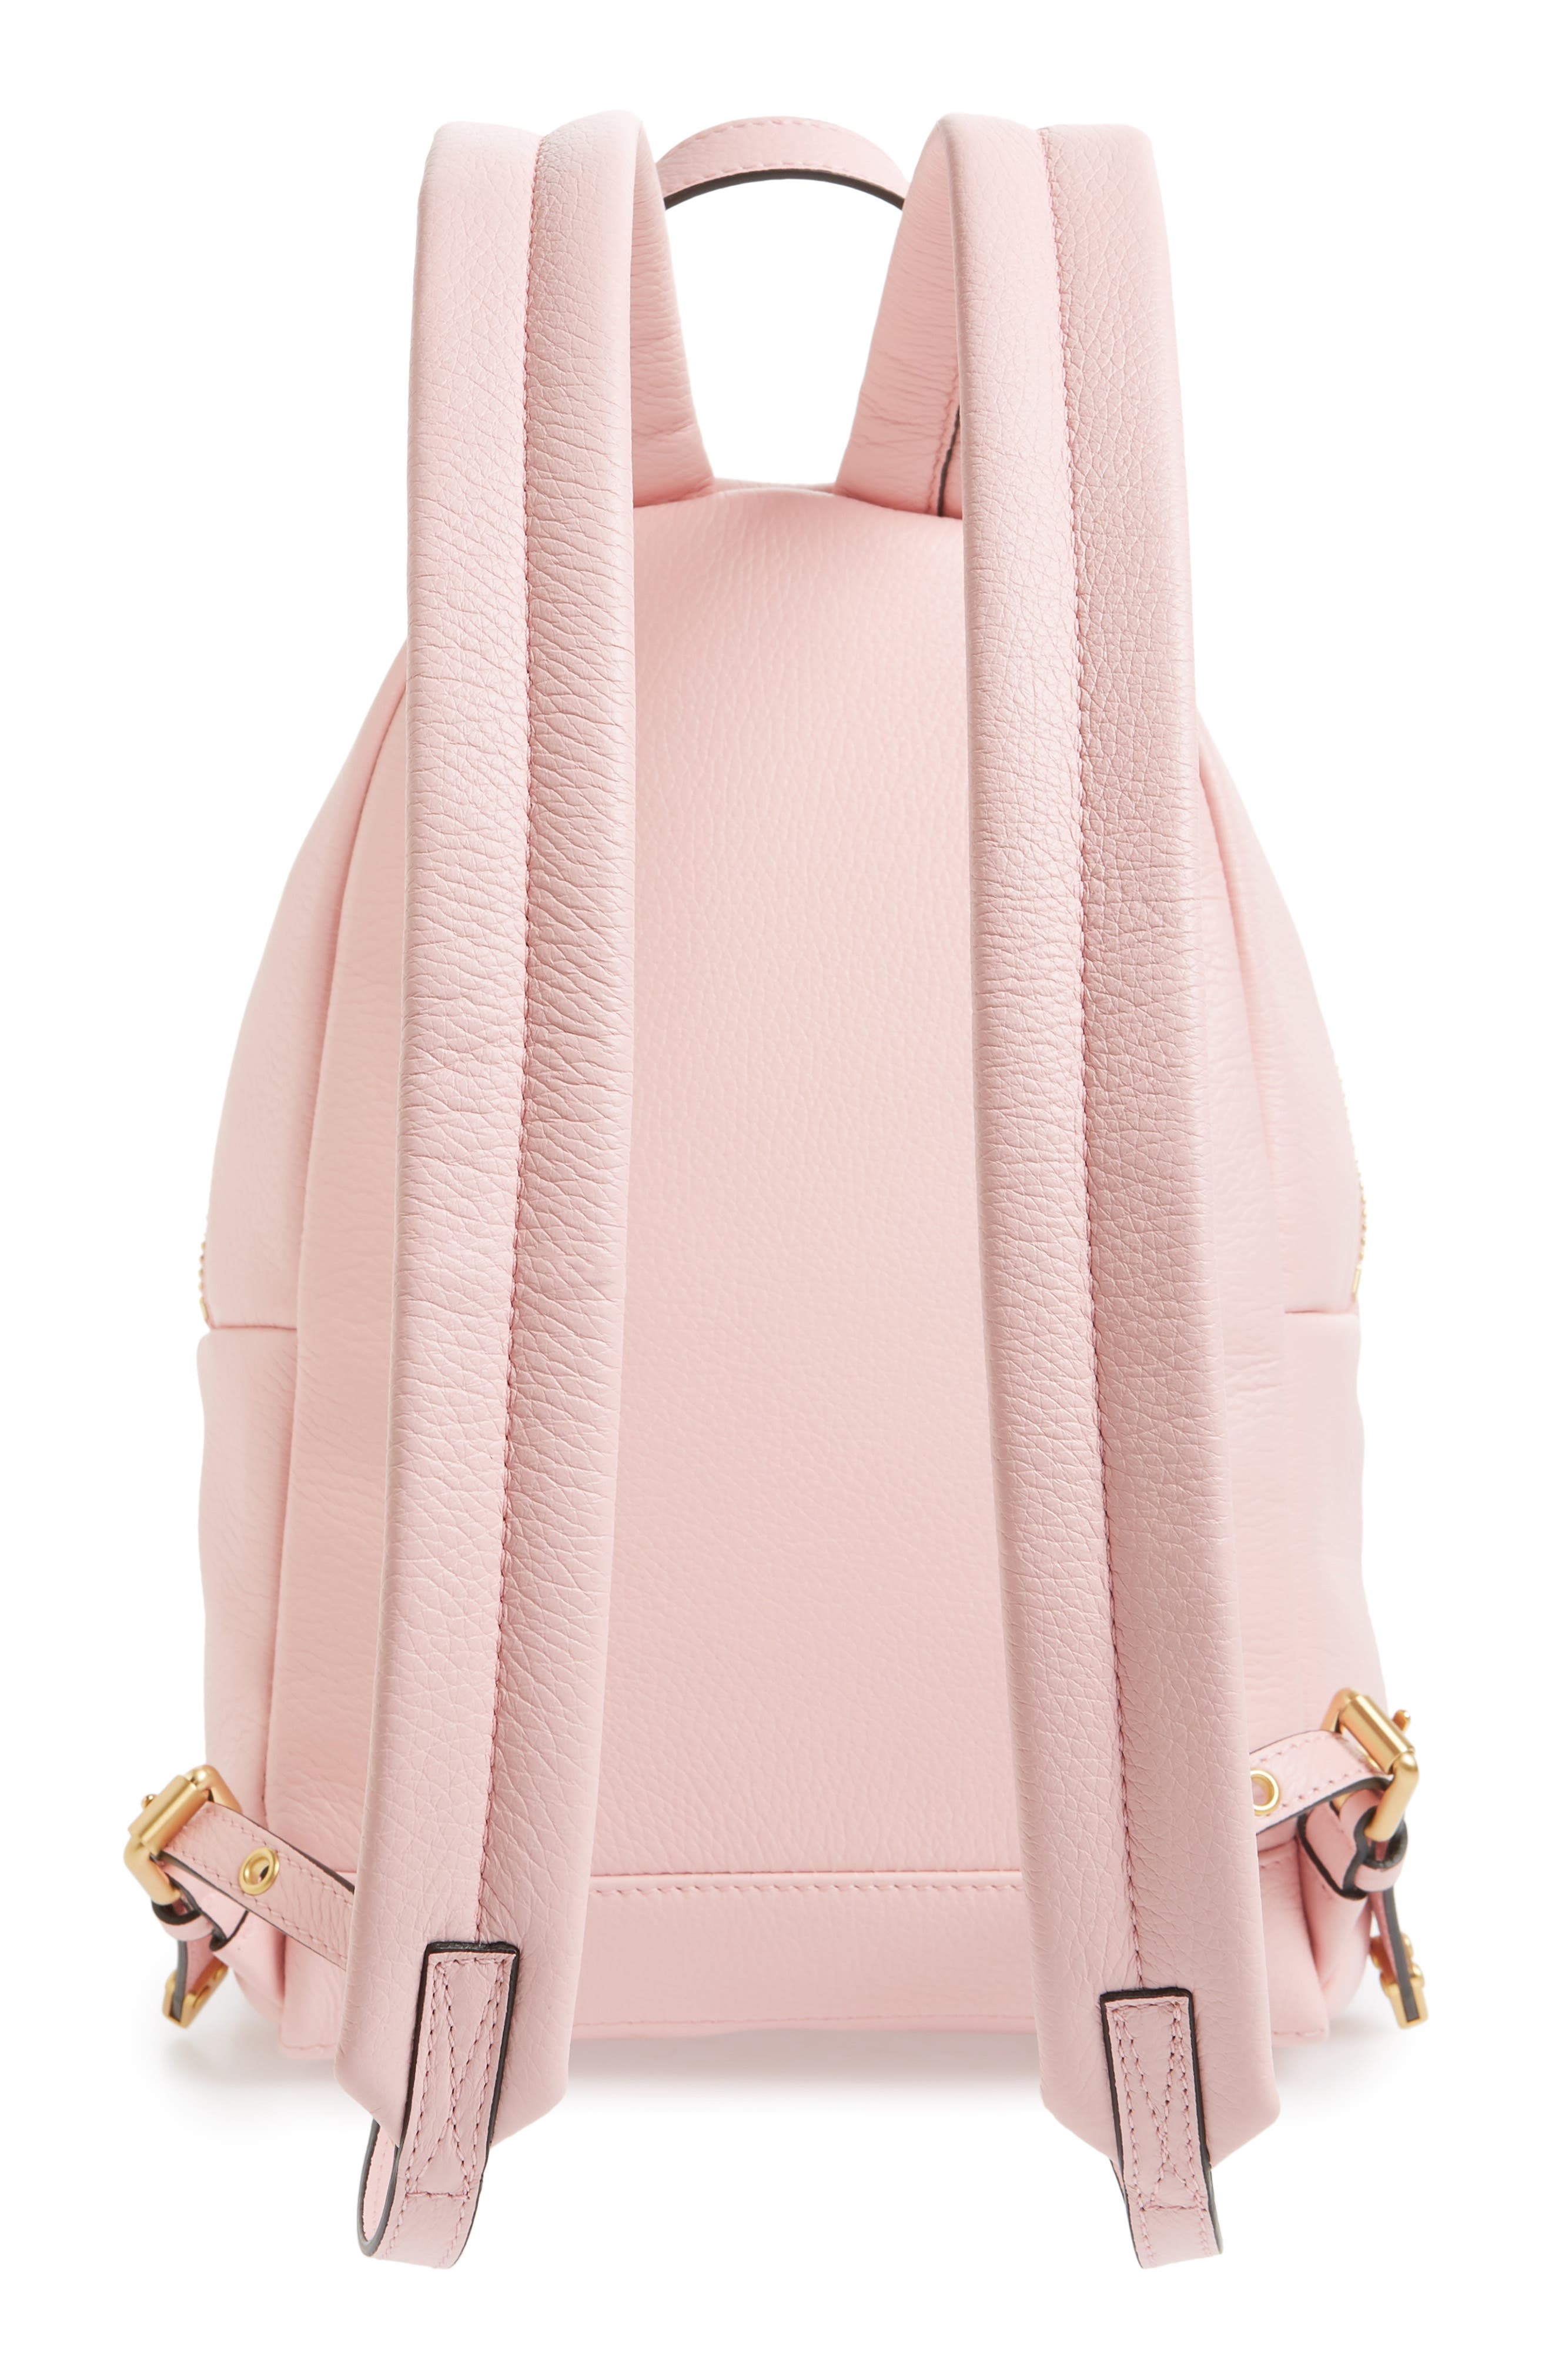 MOSCHINO,                             Logo Leather Backpack,                             Alternate thumbnail 3, color,                             PINK